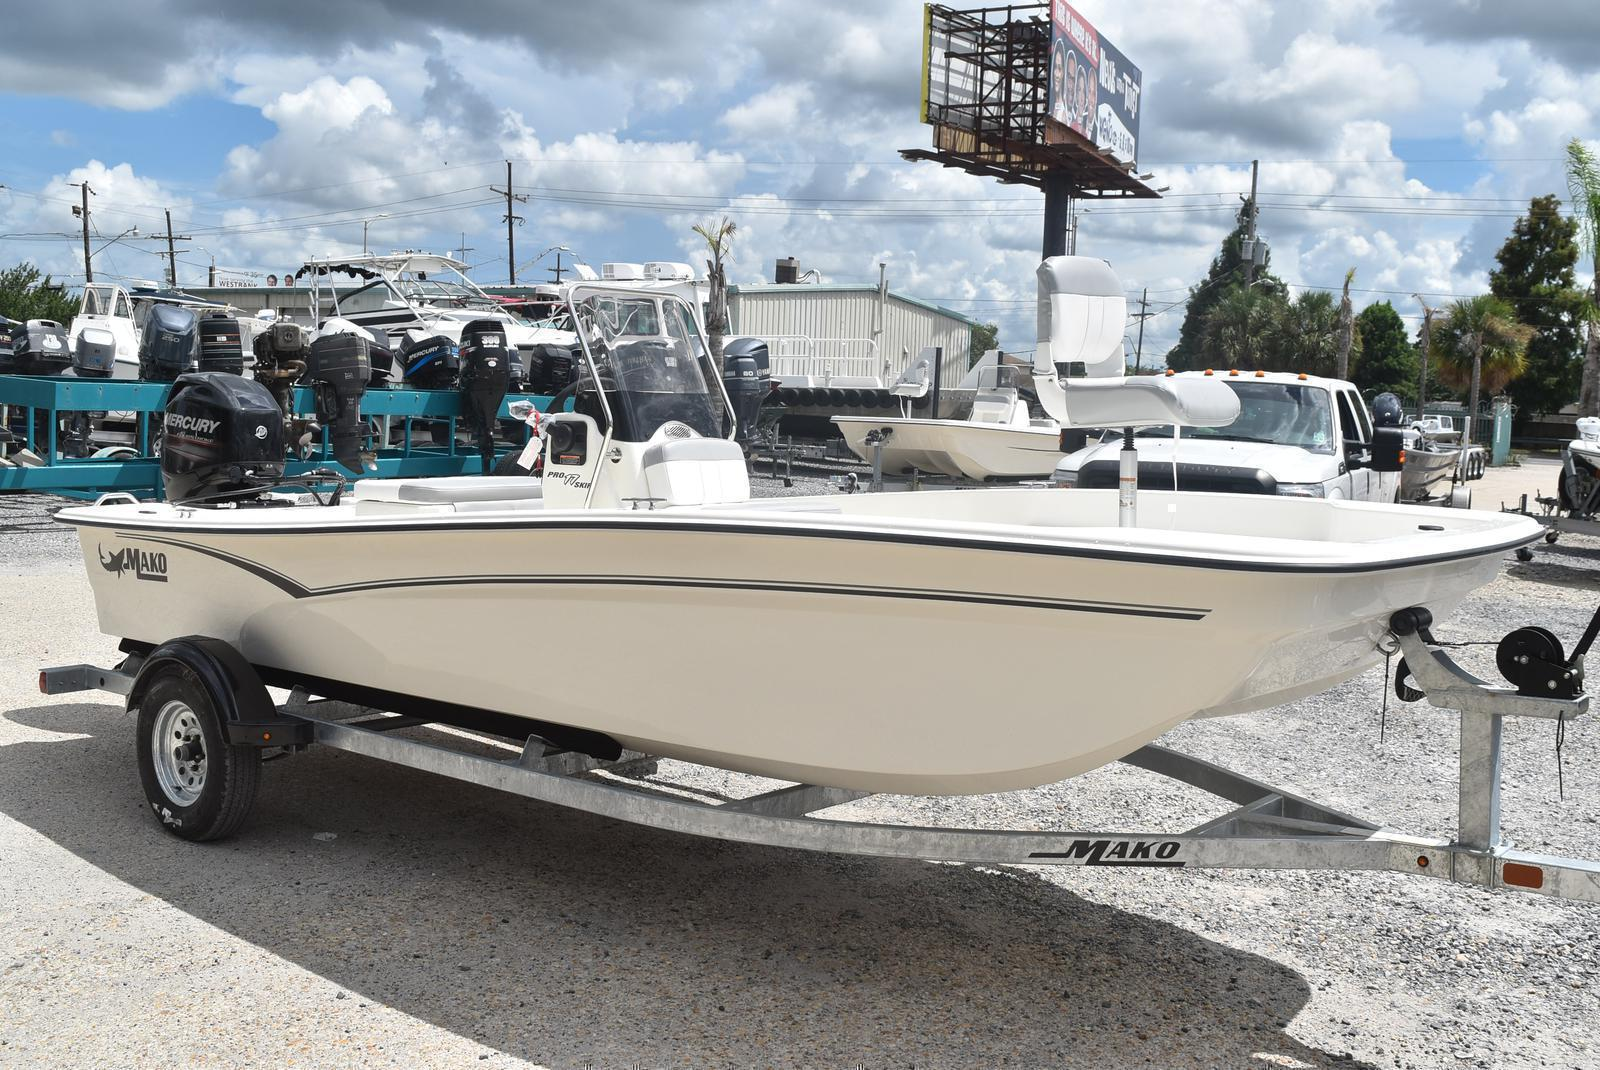 2020 Mako boat for sale, model of the boat is Pro Skiff 17, 75 ELPT & Image # 650 of 702